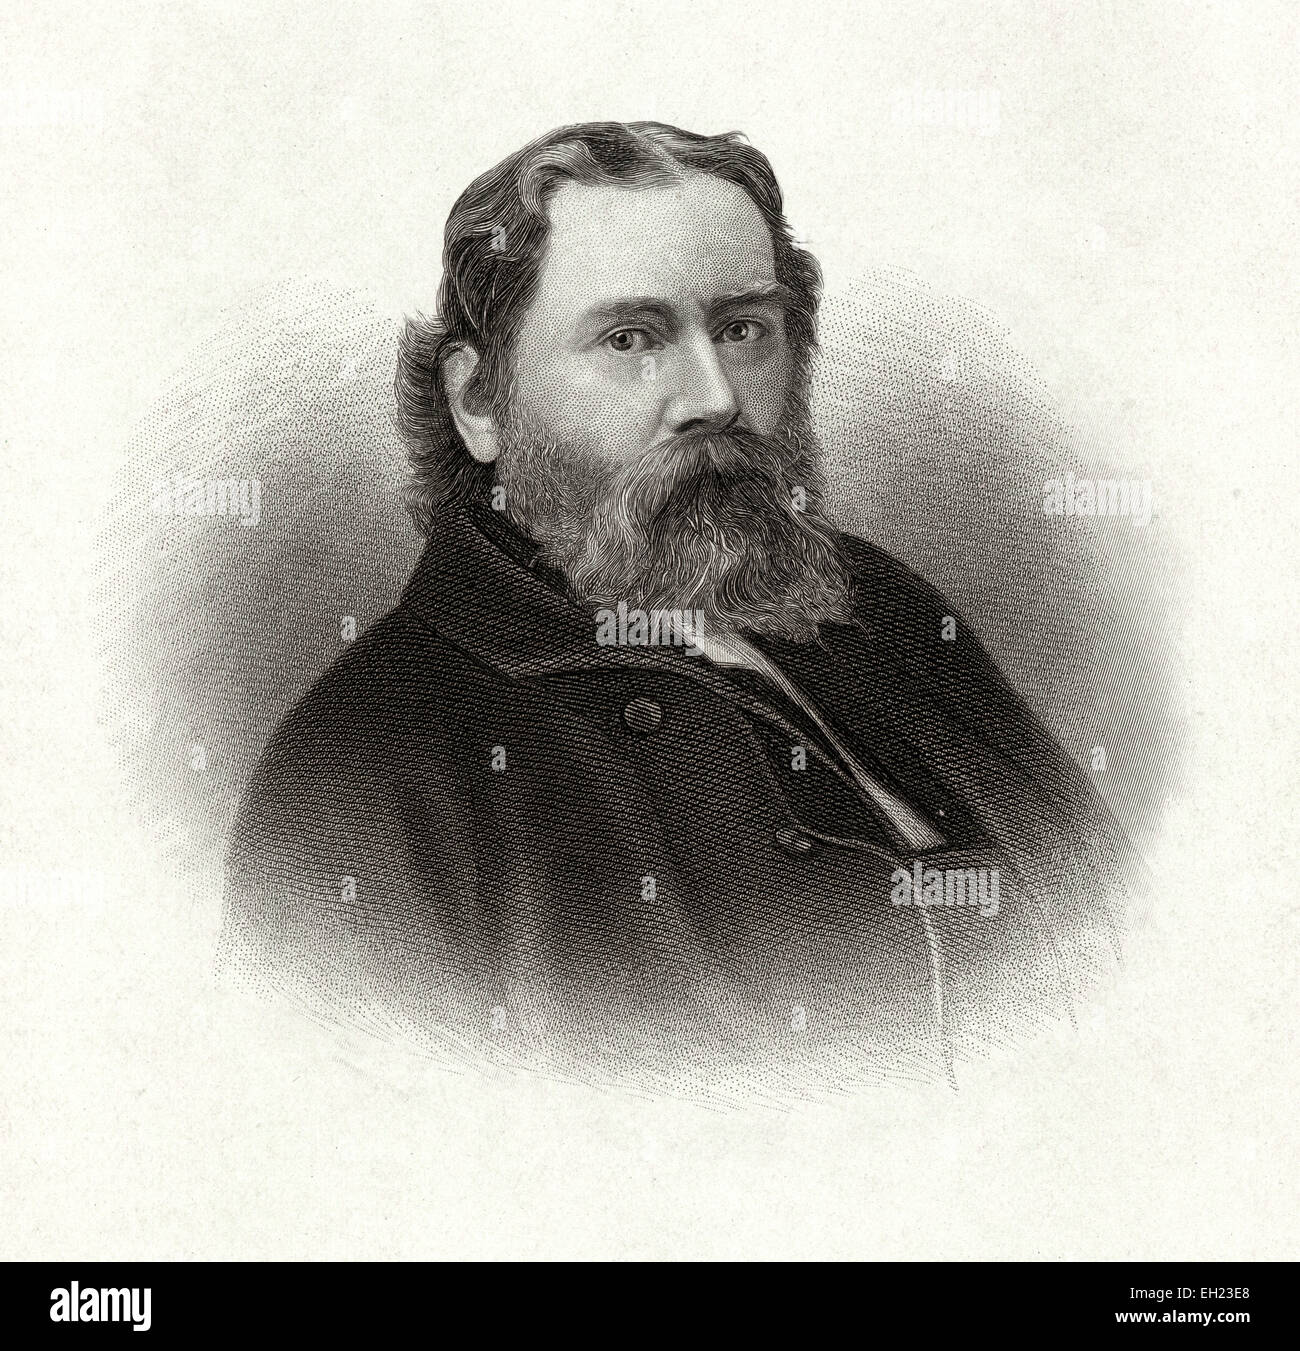 Antique c1885 steel engraving, James Russell Lowell. James Russell Lowell (February 22, 1819 - August 12, 1891) Stock Photo